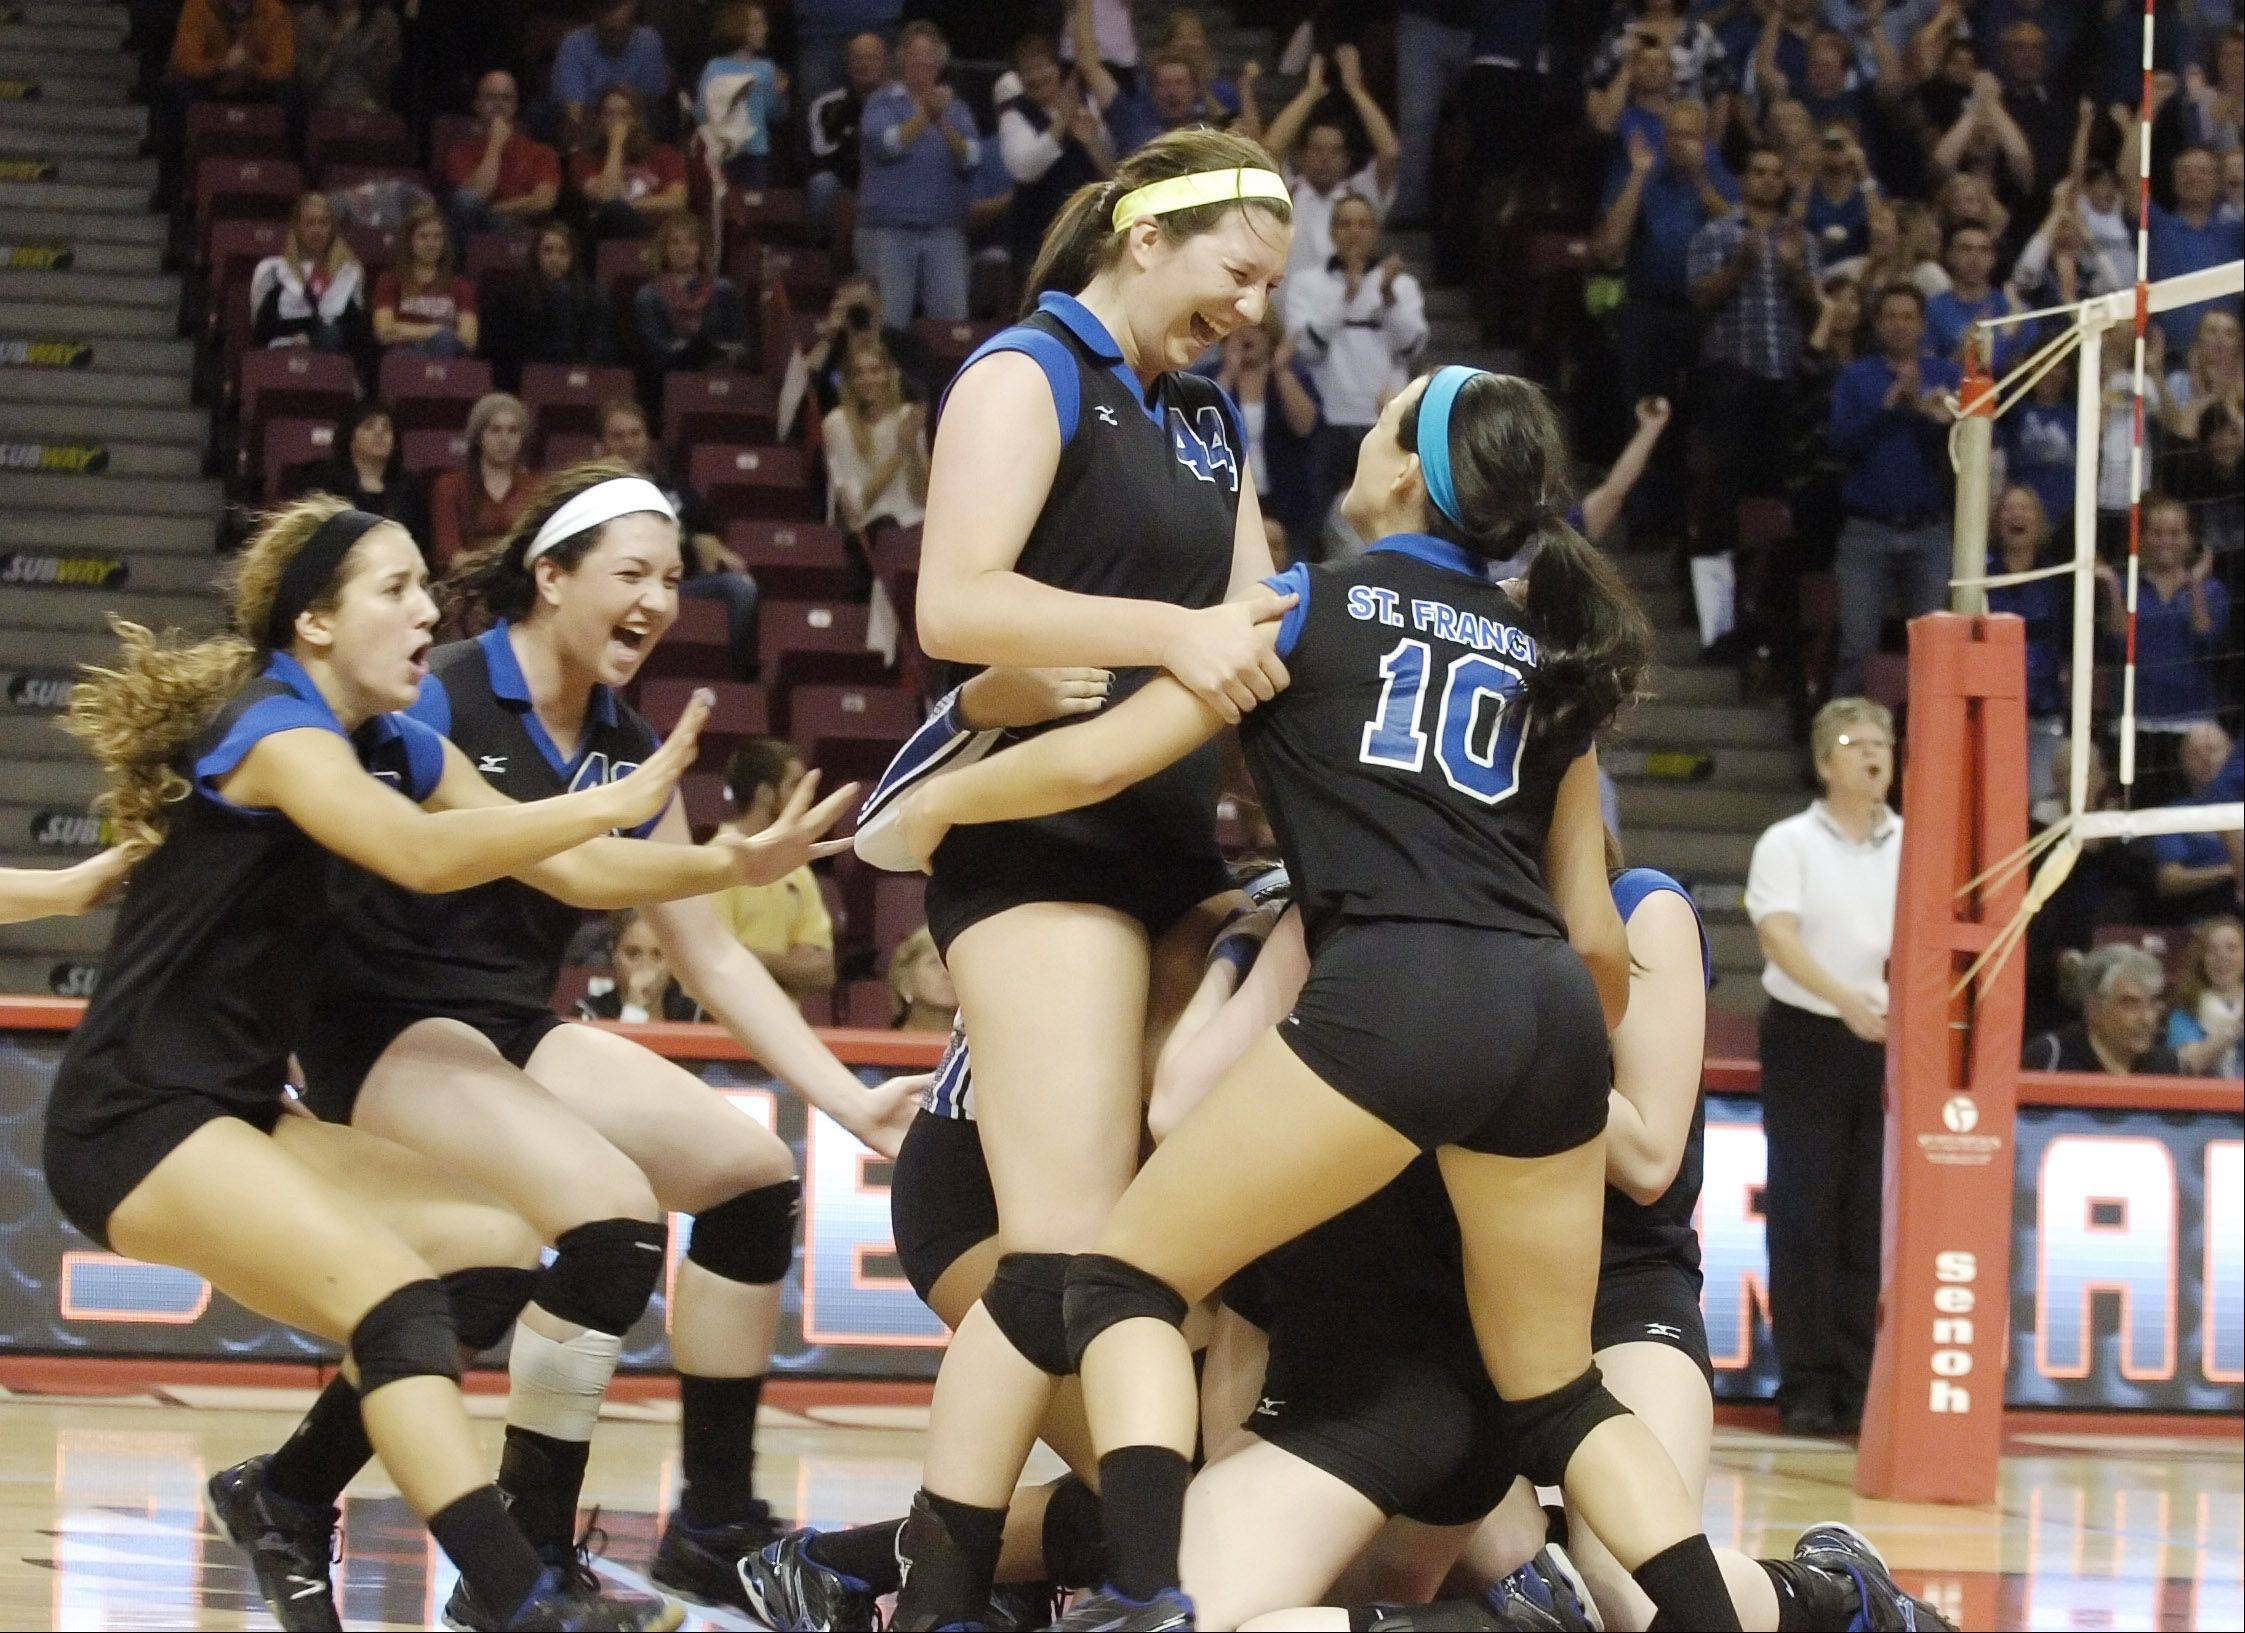 St. Francis reacts to their win over Richmond-Burton in the class 3A volleyball championship Saturday at Redbird Arena.